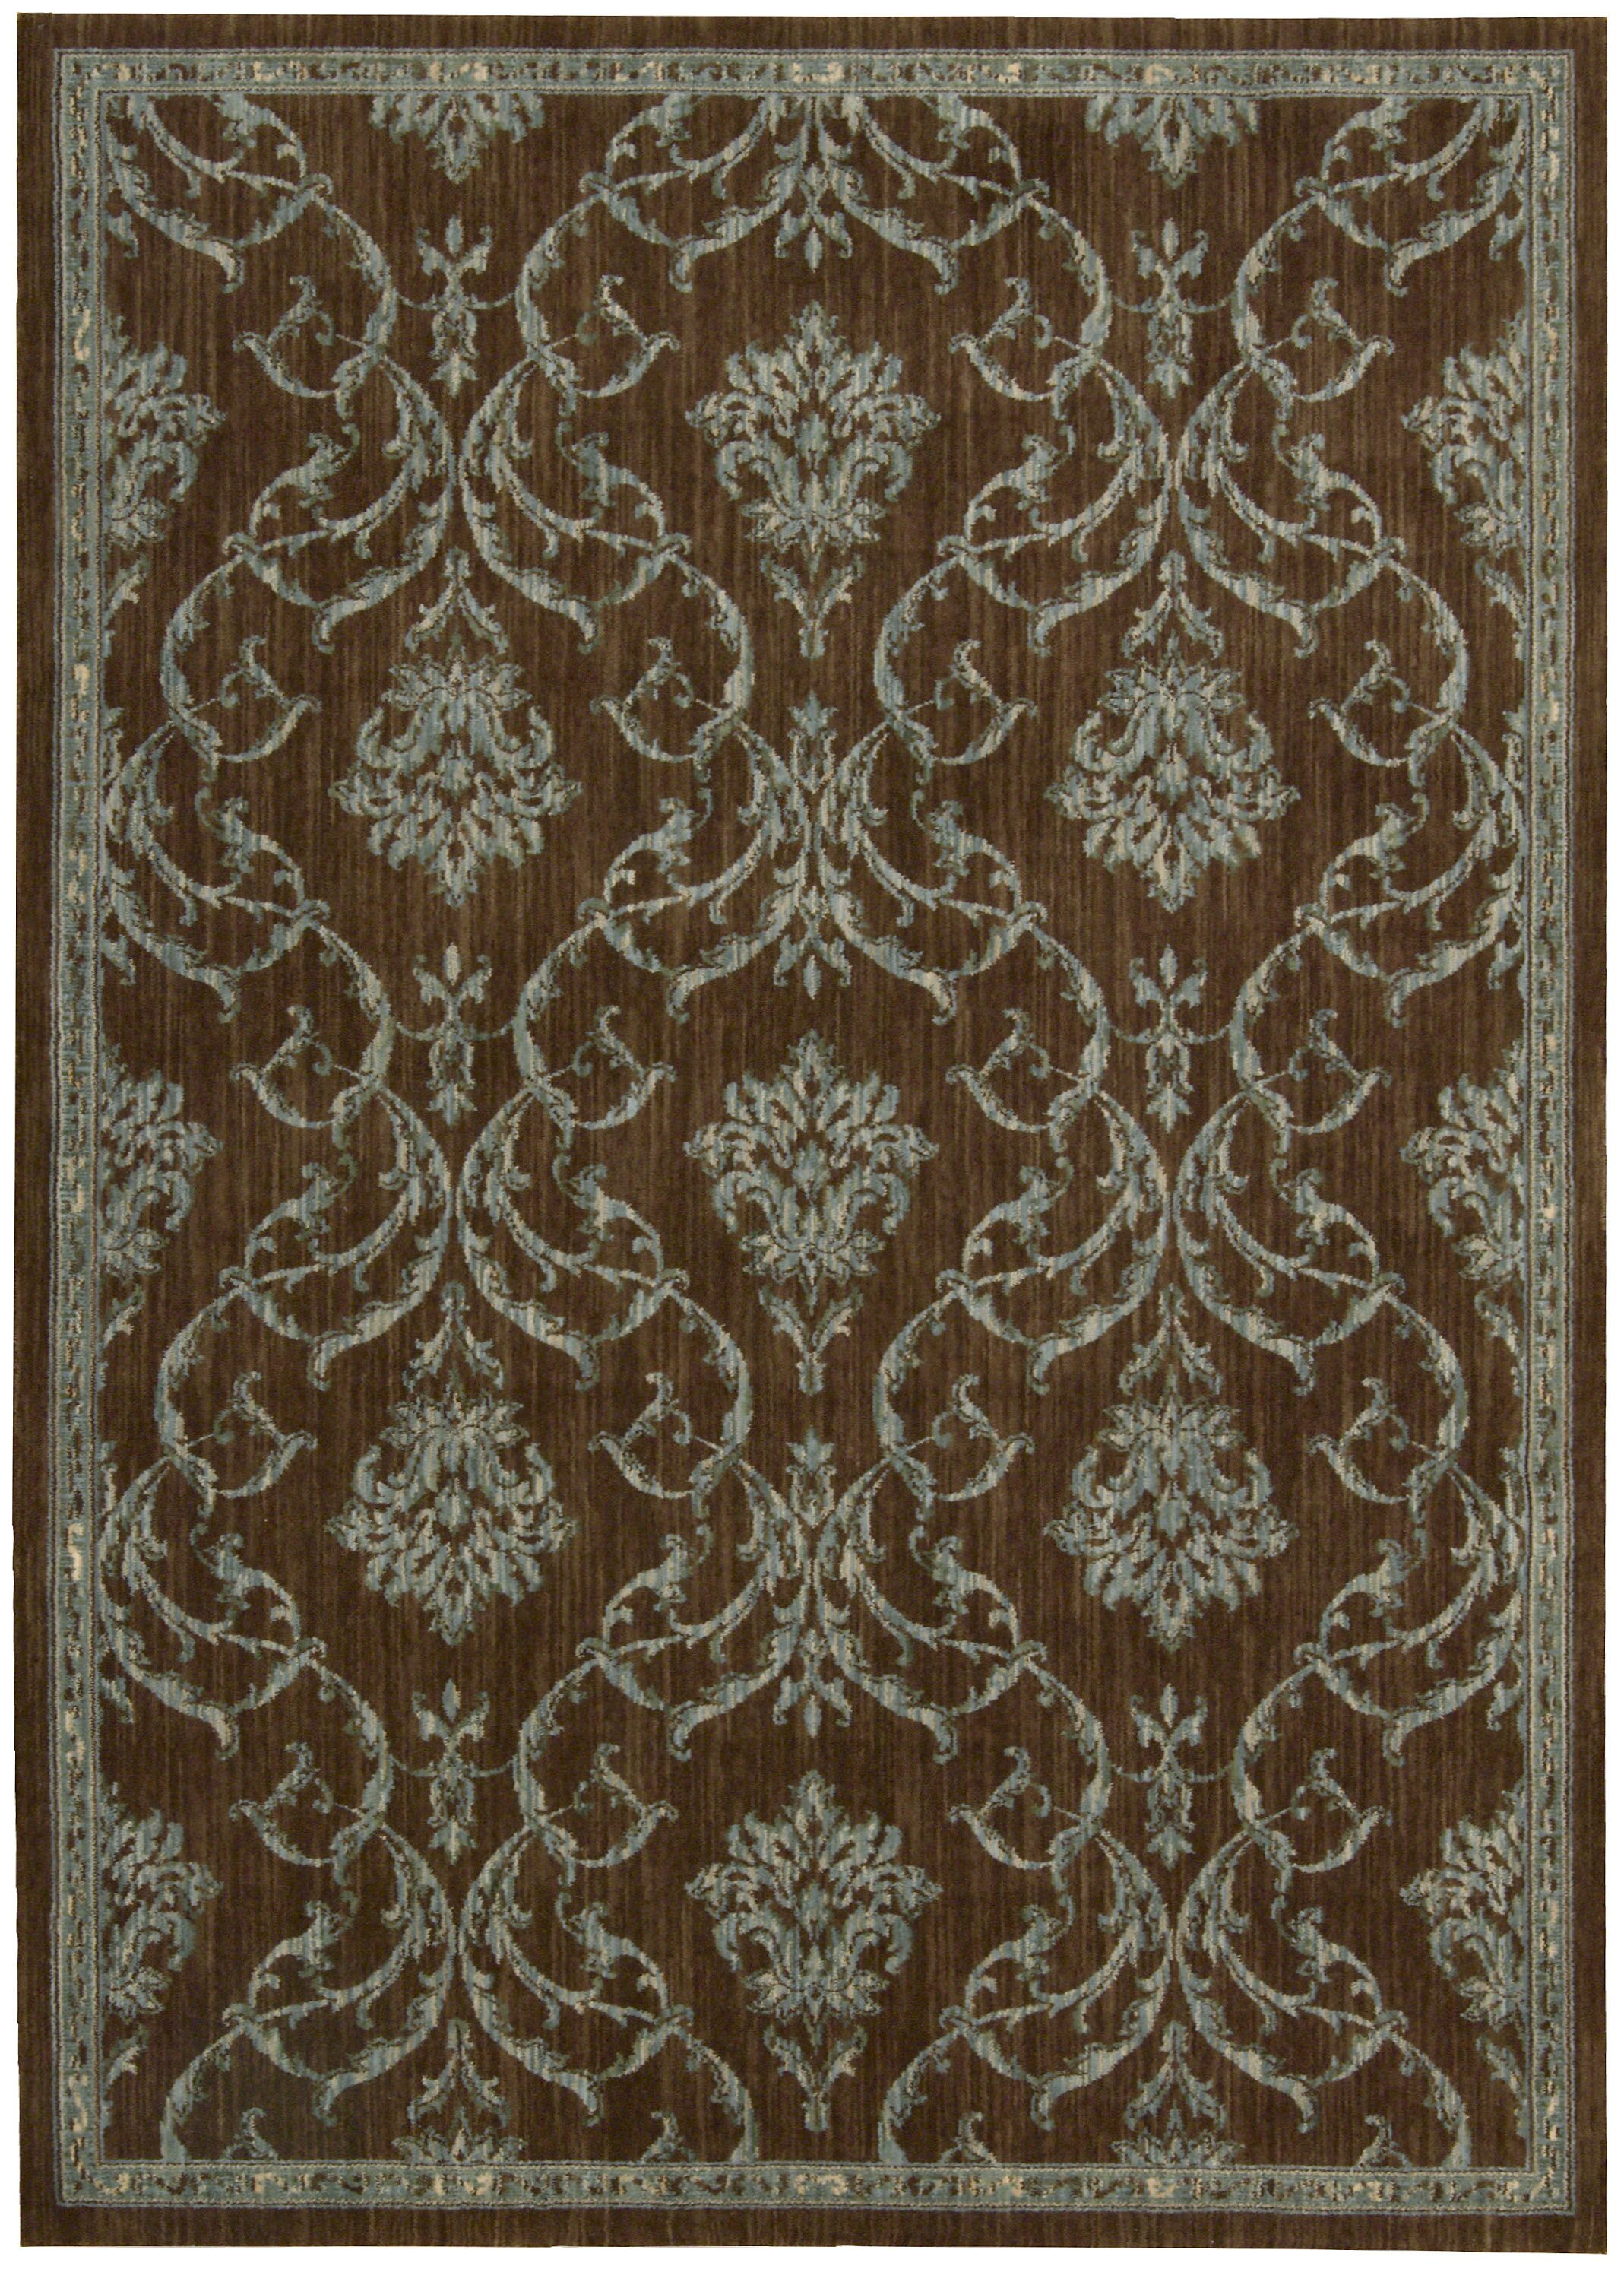 Paige Hand-Woven Brown Area Rug Rug Size: Rectangle 3'6